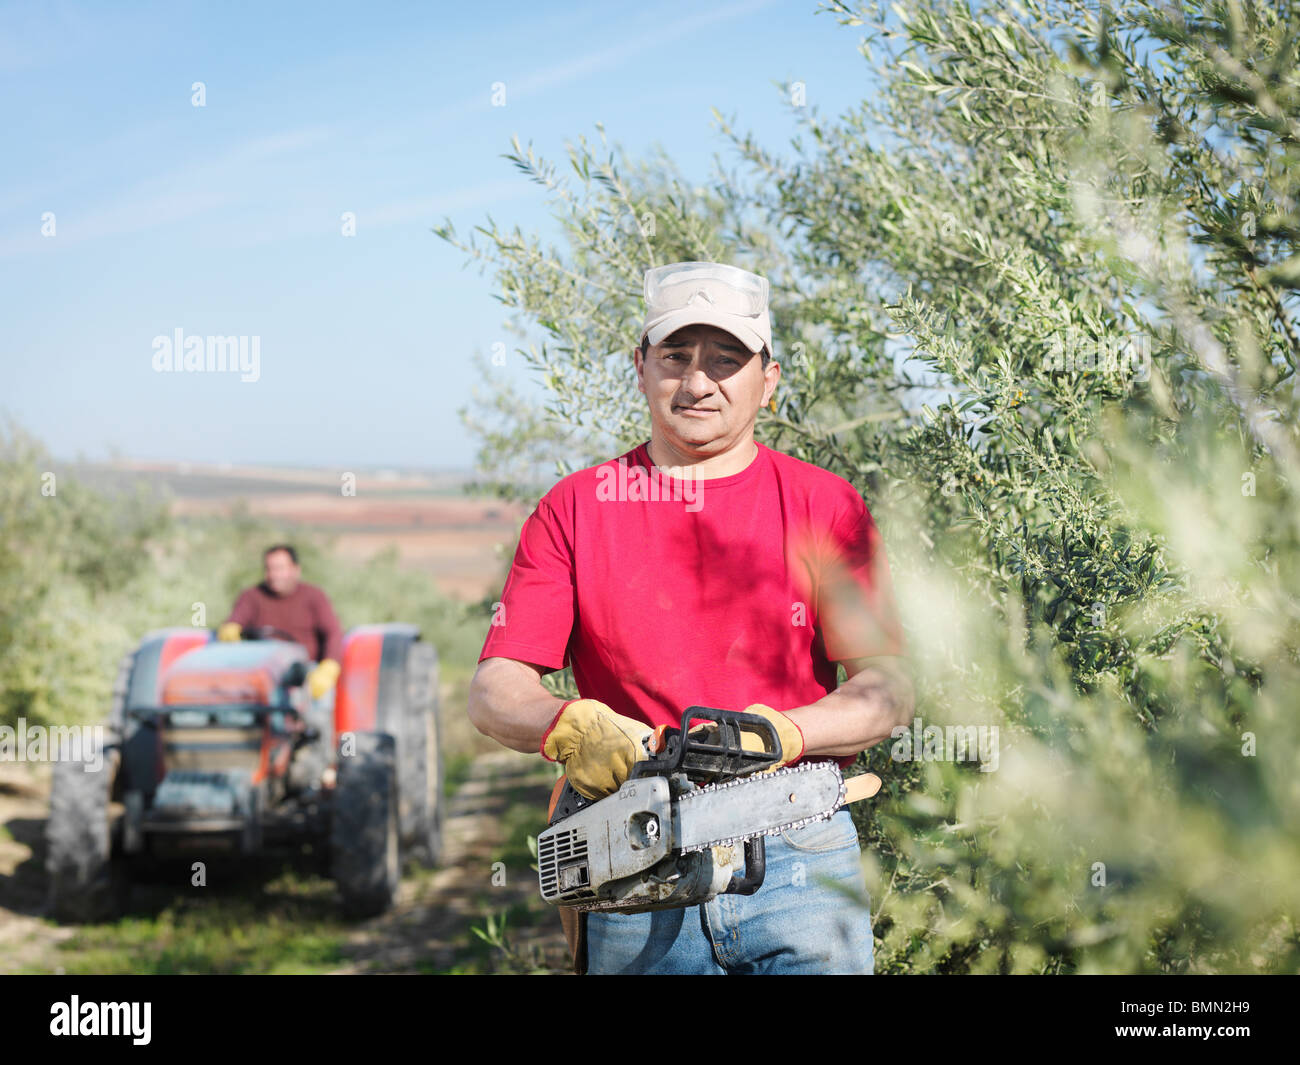 Man with chain saw in olive grove - Stock Image